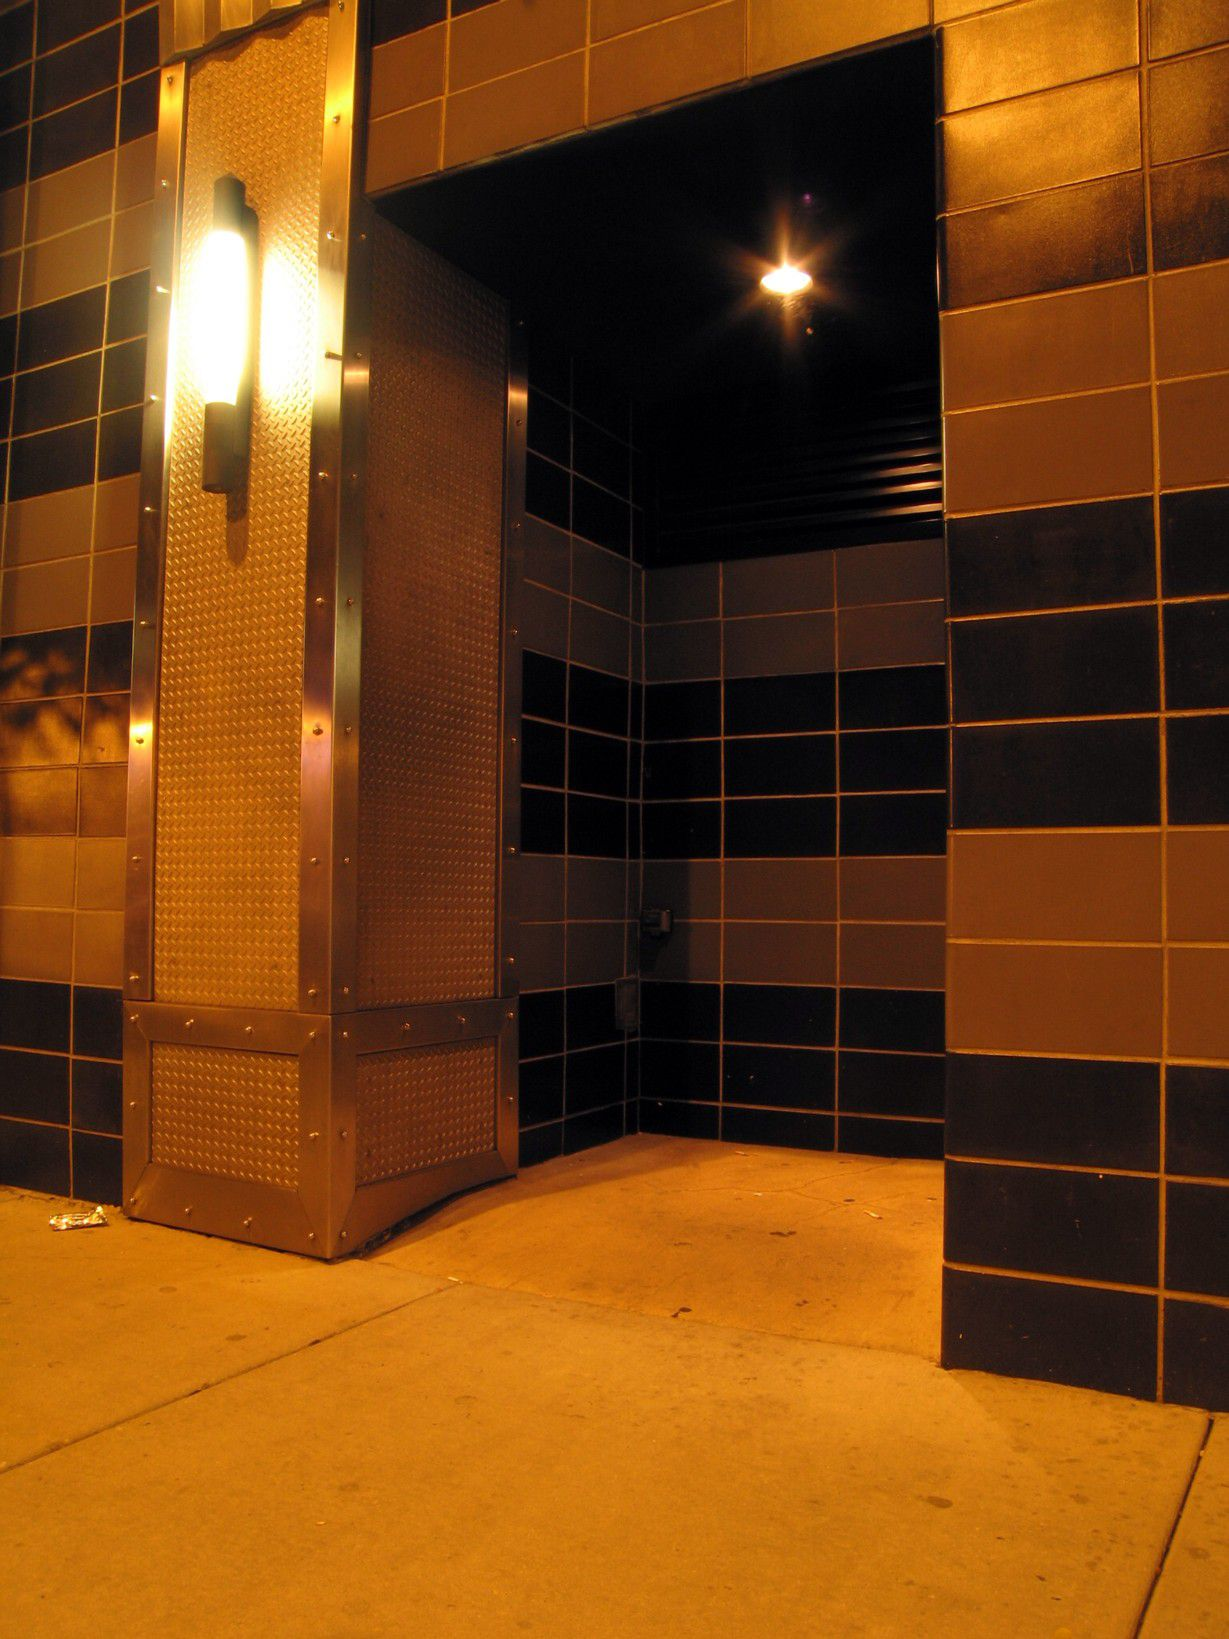 popular gay bathhouses in any major the city s Boystown